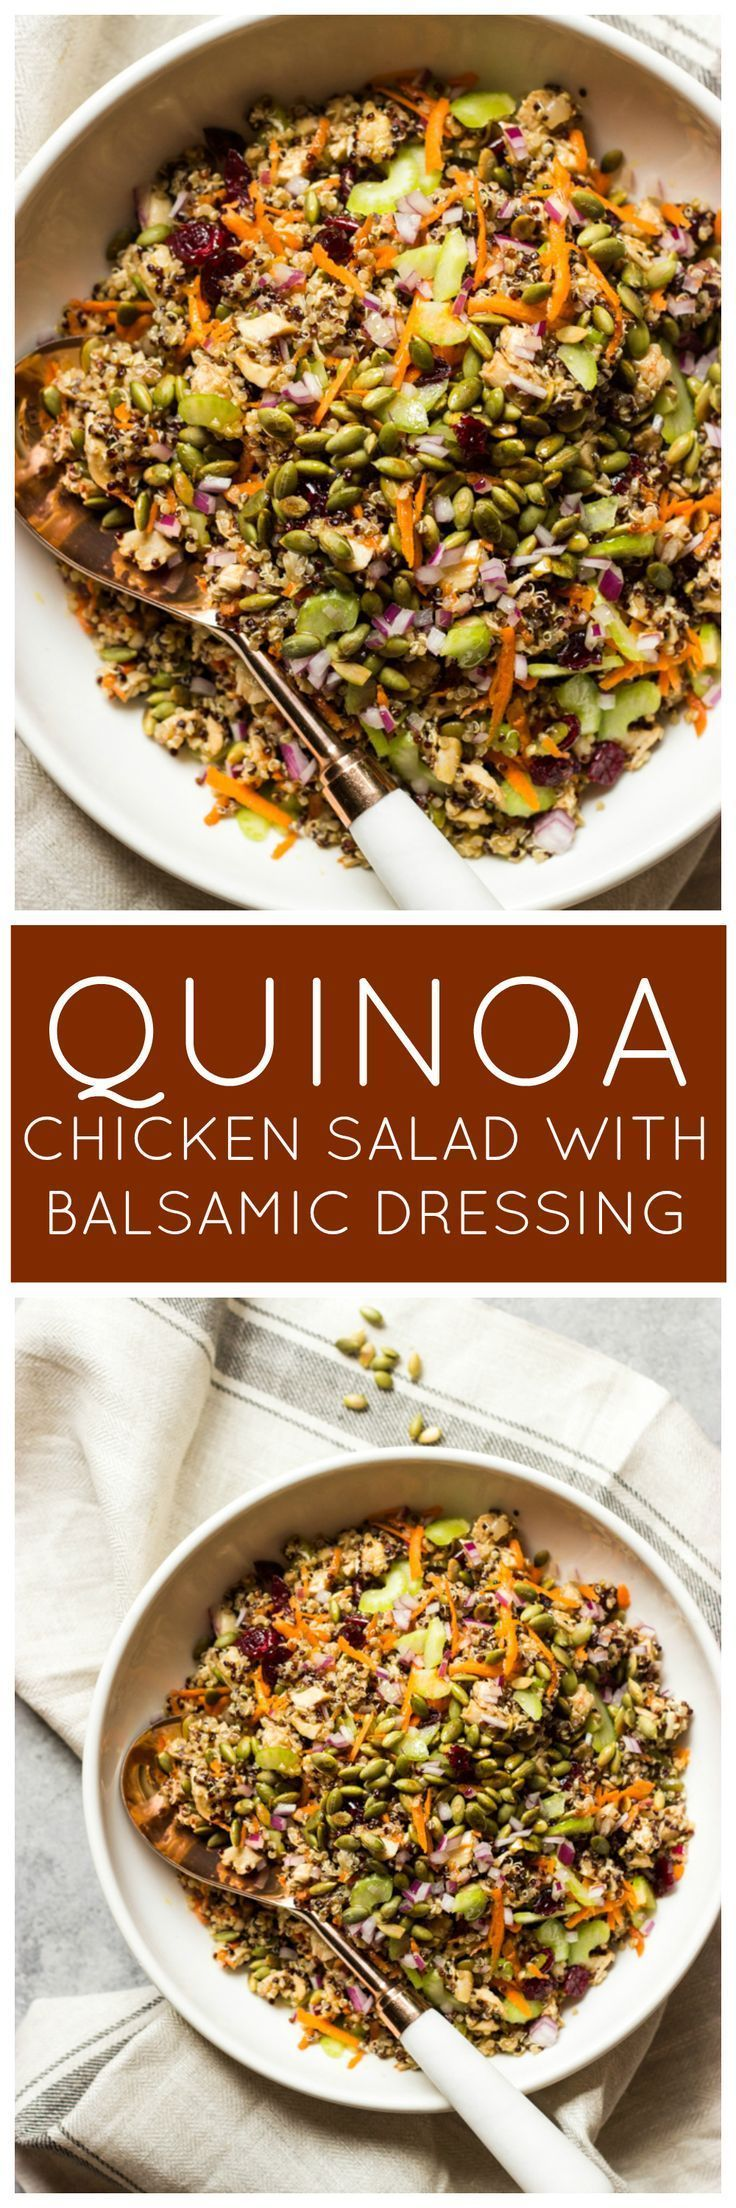 Quinoa Chicken Salad With Balsamic Dressing Little Broken Recipe Salad With Balsamic Dressing Chicken Quinoa Salad Chicken Salad Recipes